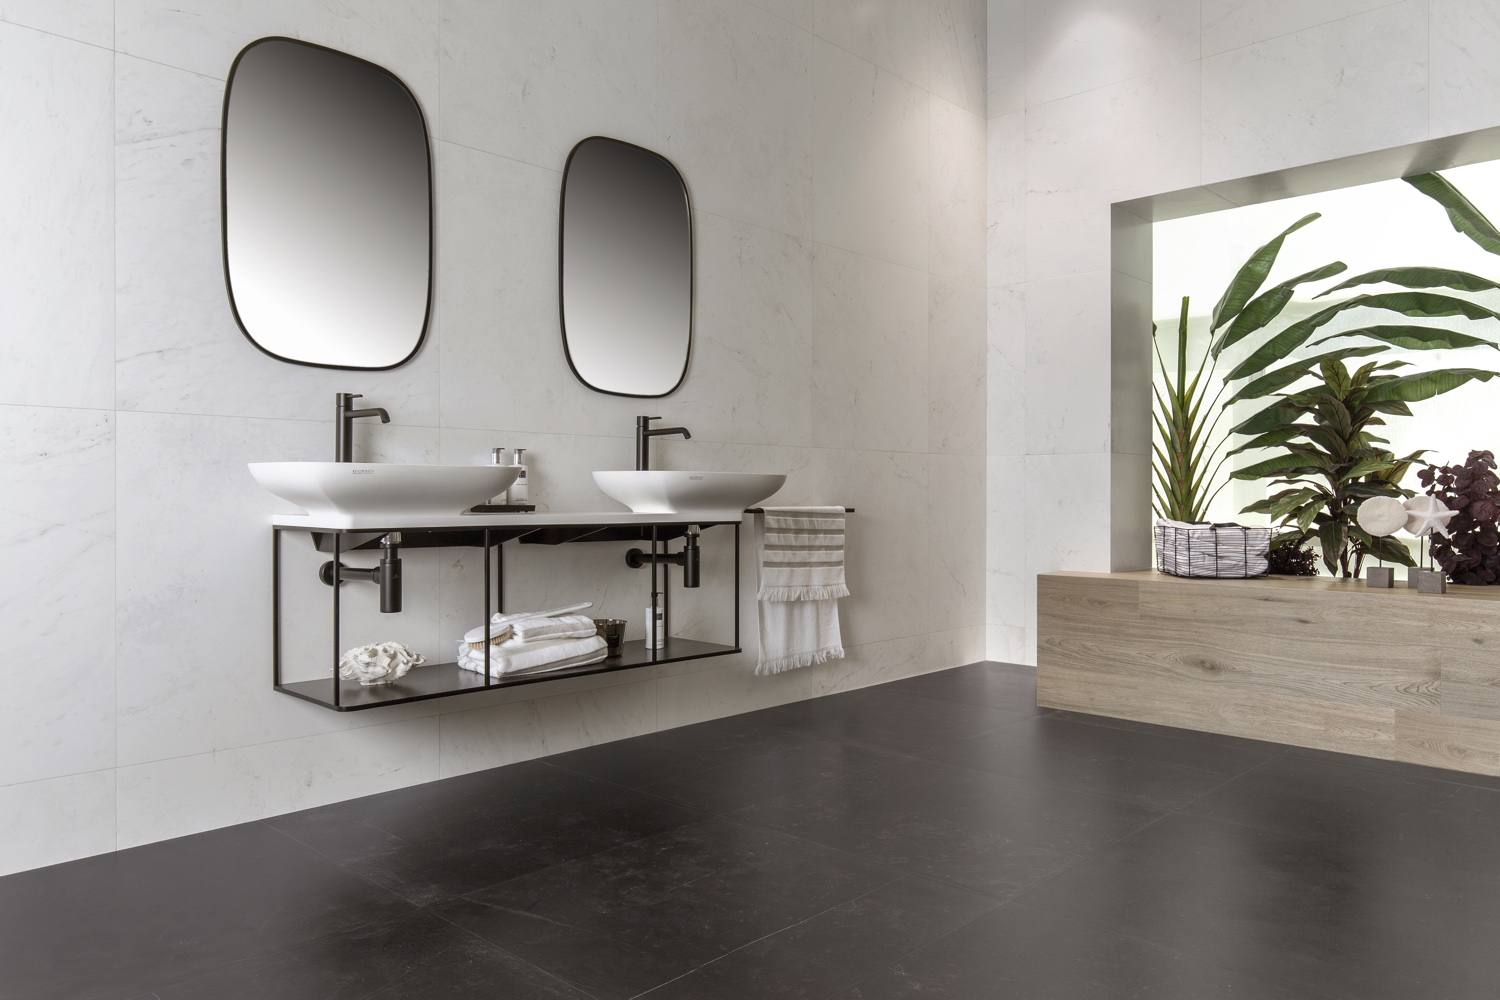 Porcelanosa Kitchens And Bathrooms - Kitchen Appliances Tips And Review